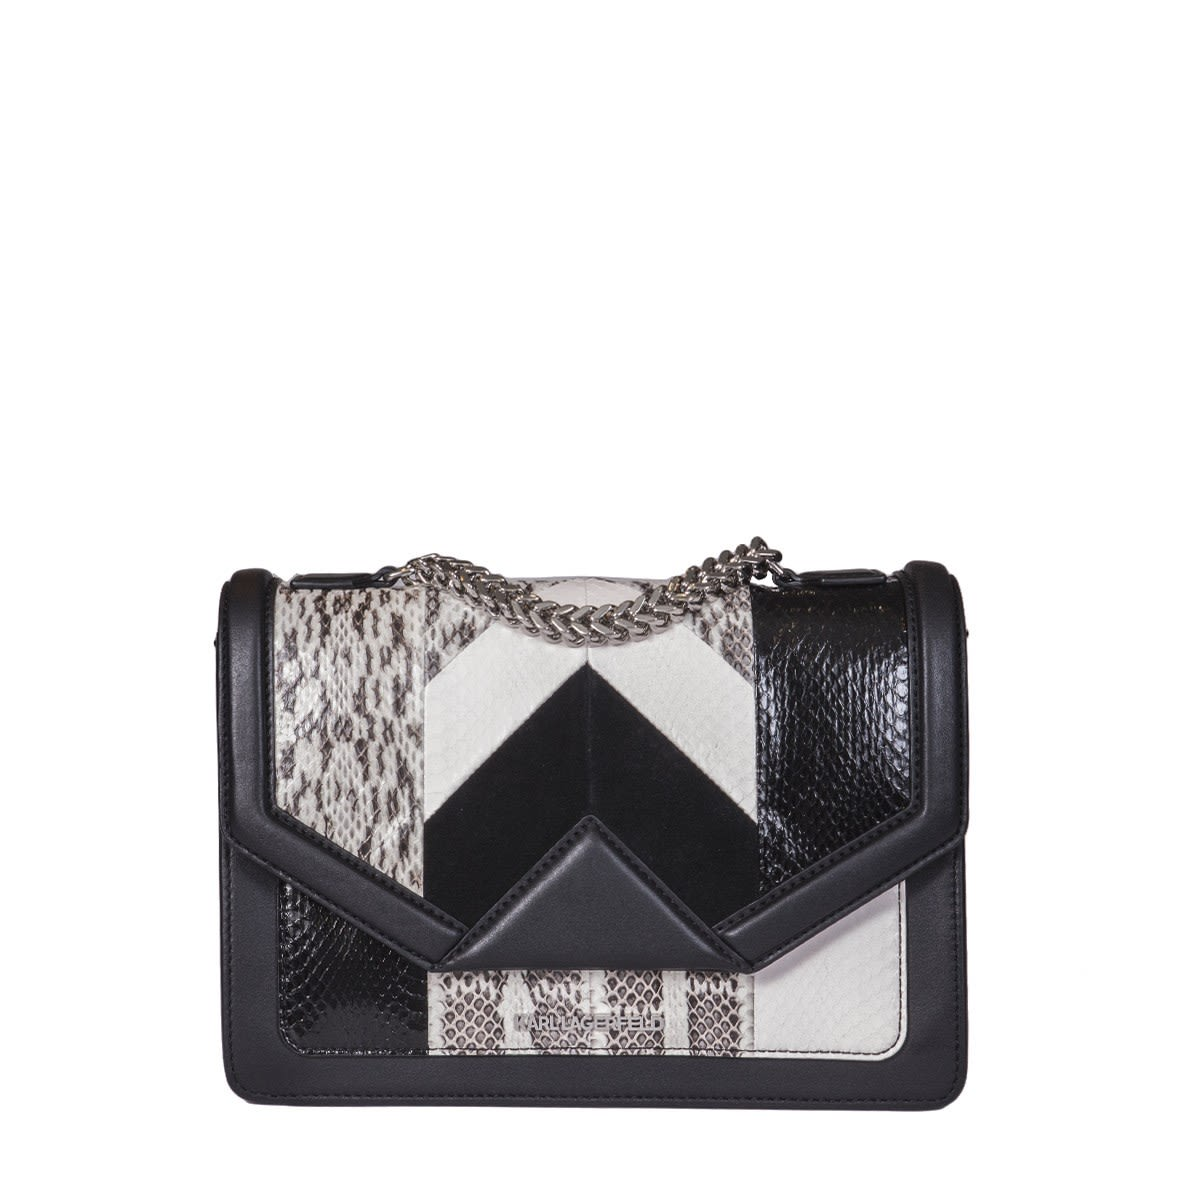 K-klassik Exotic Shoulder Bag